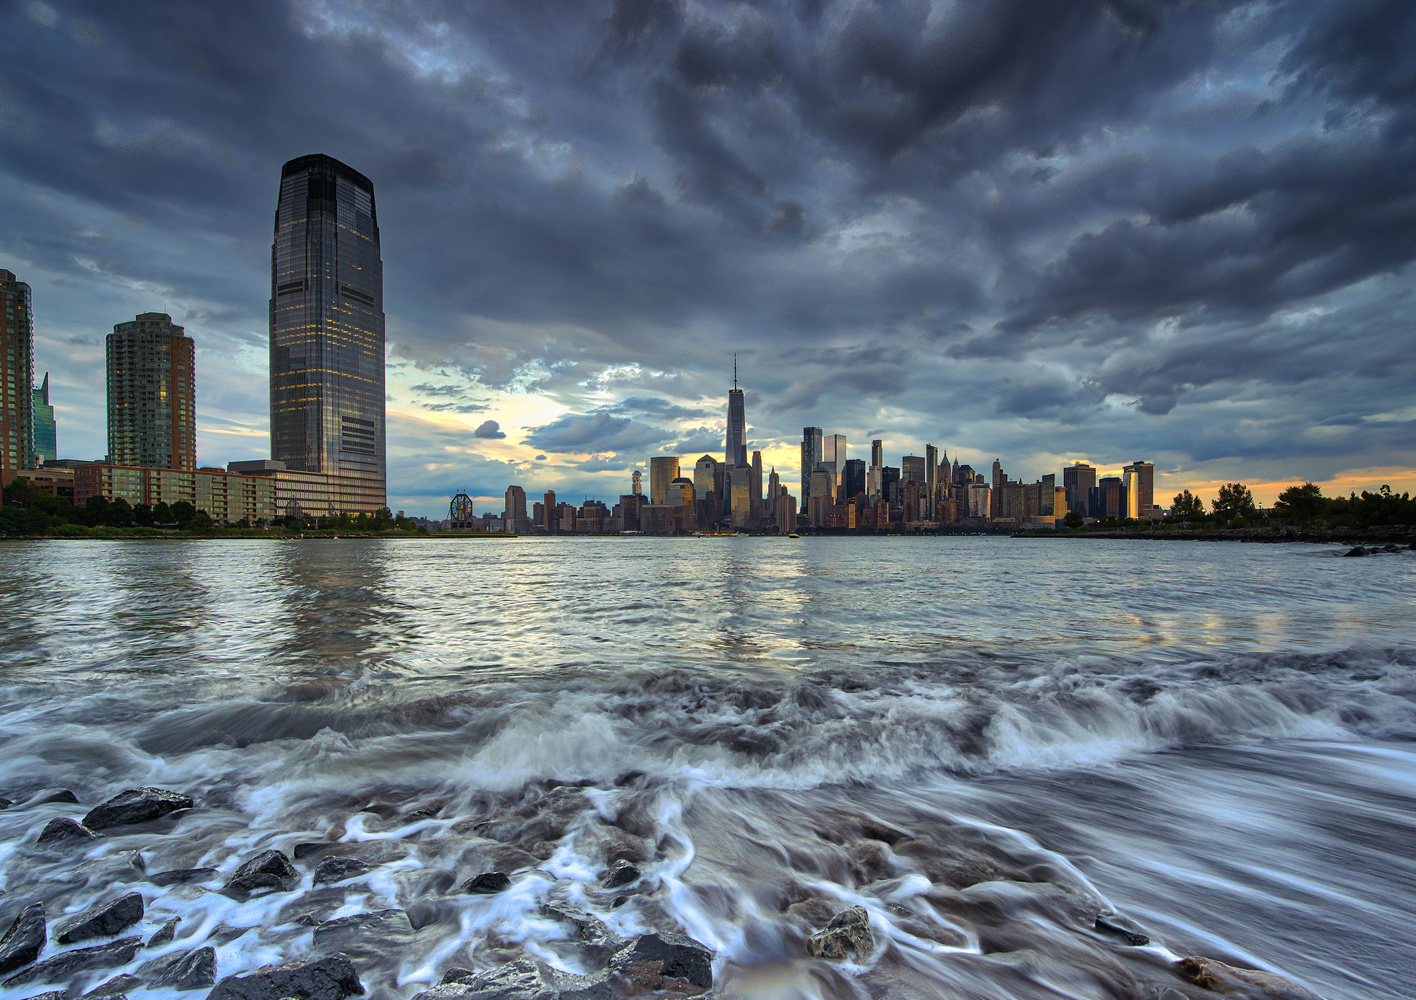 On the Hudson by Andrew Weiss